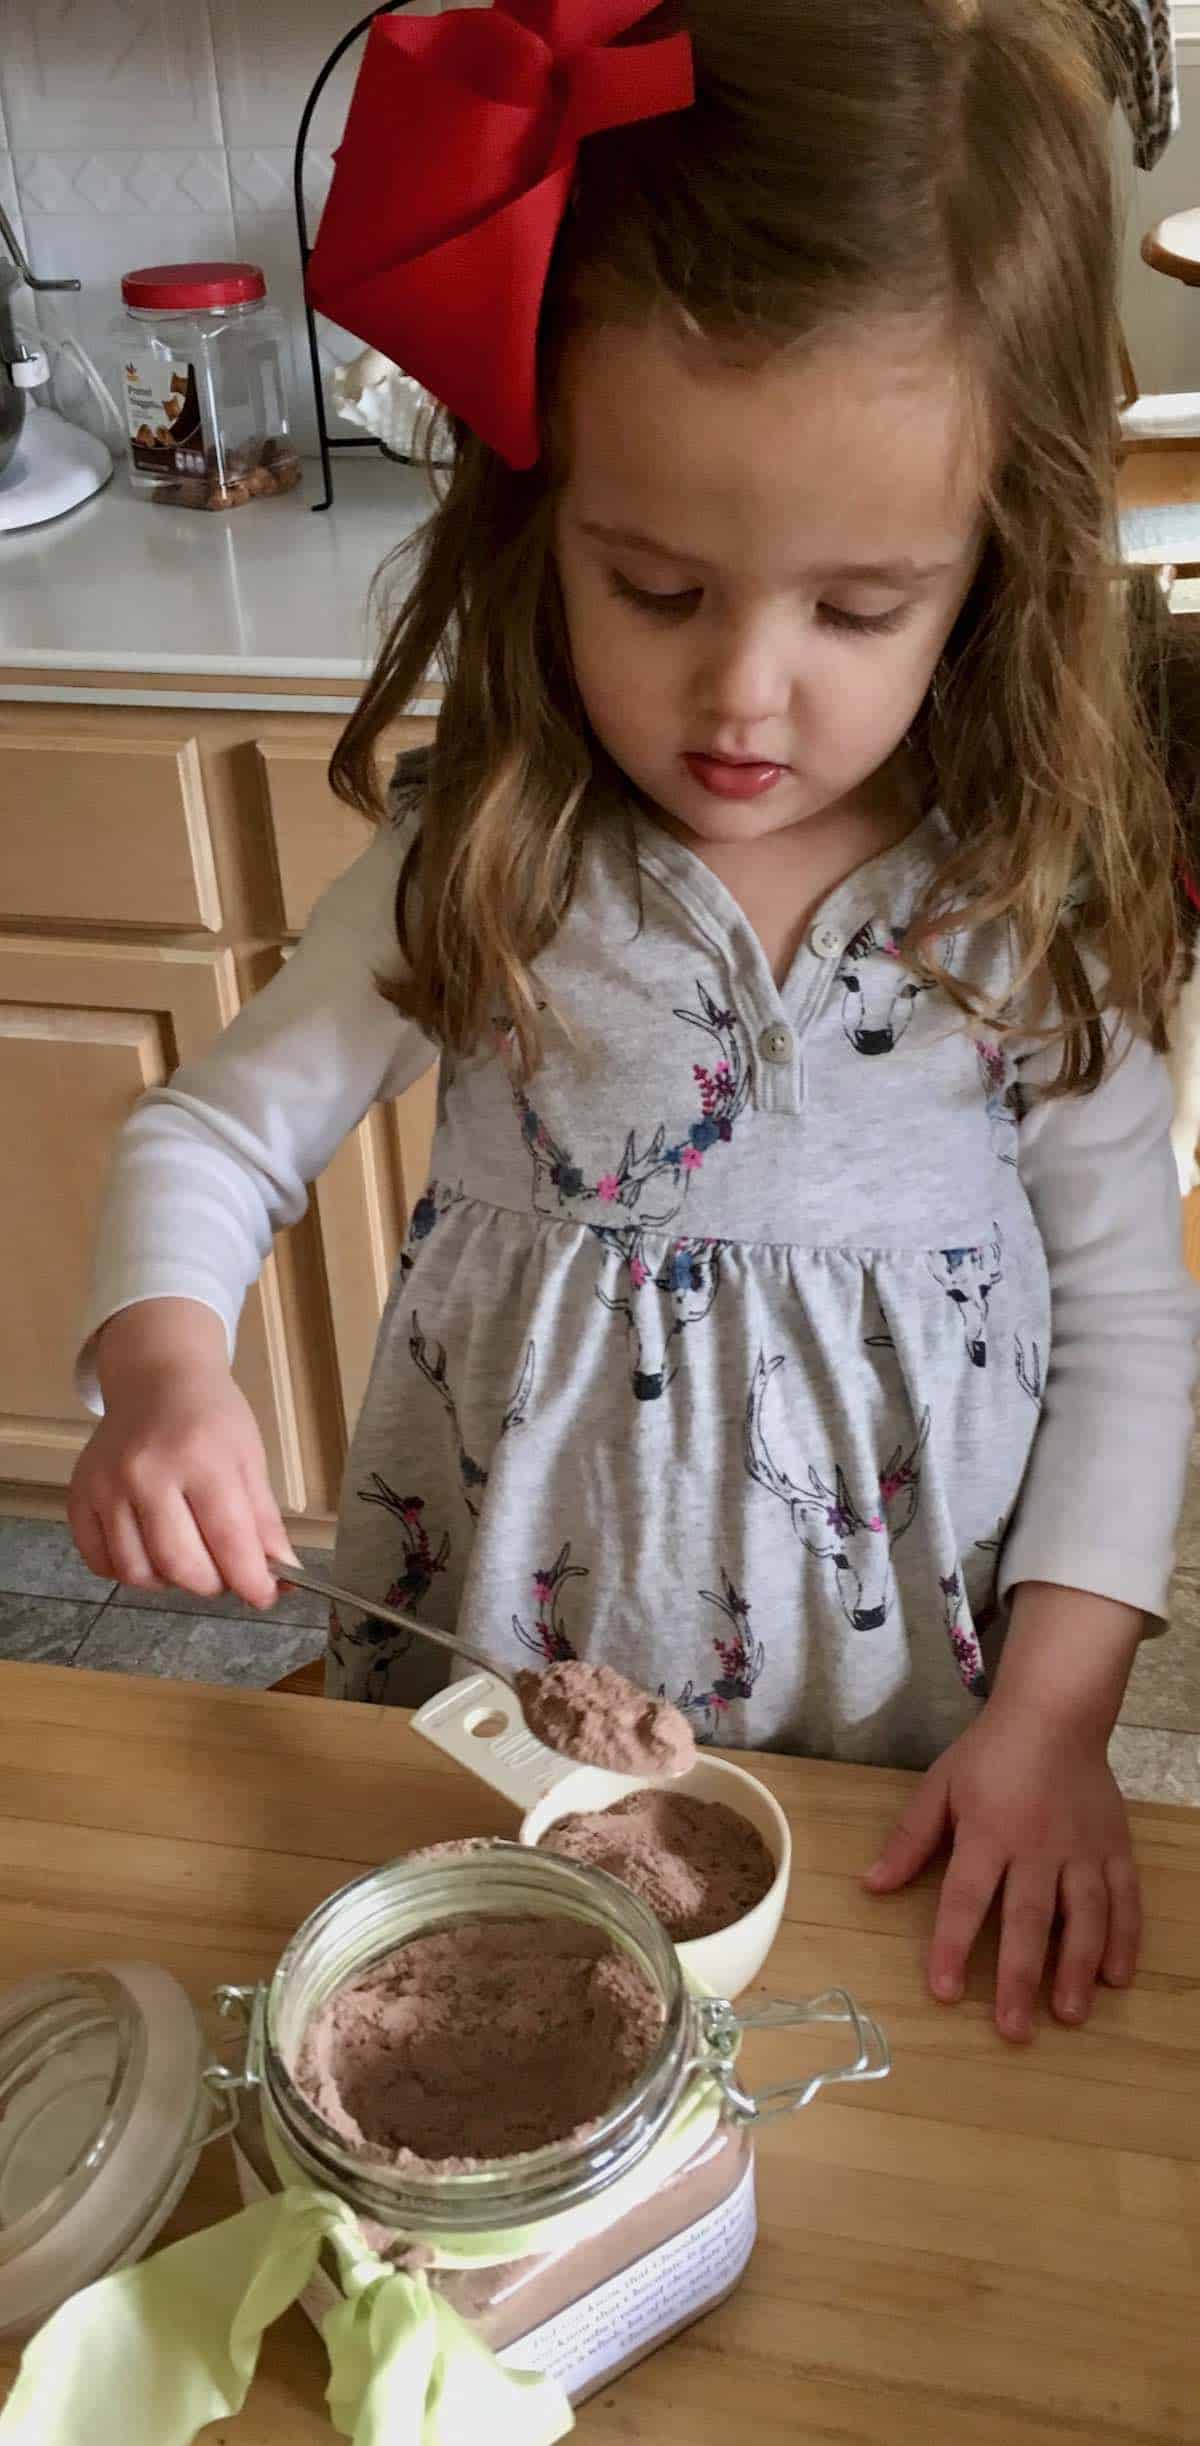 my grand daughter spooning the most decadent hot chocolate mix